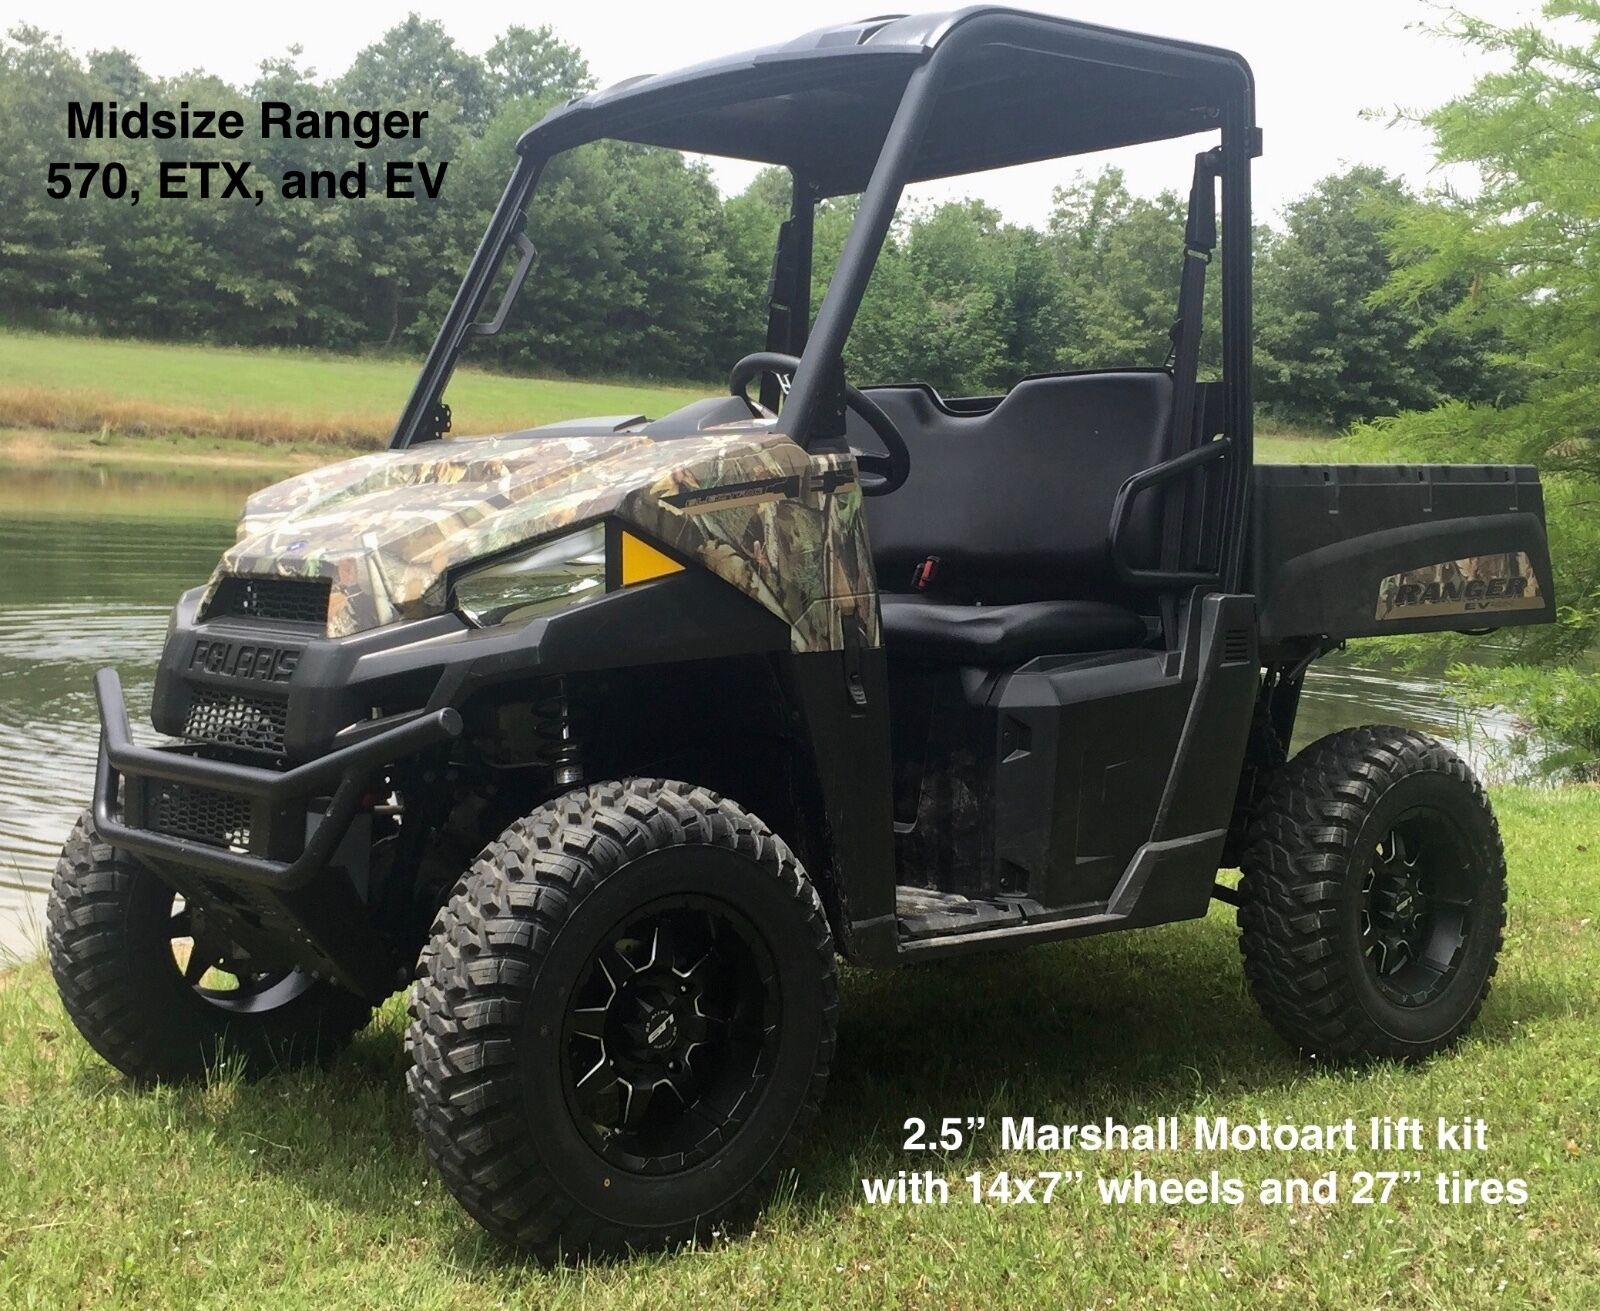 polaris ranger lift kit mid size 570 570 crew 2 5 2014 19. Black Bedroom Furniture Sets. Home Design Ideas